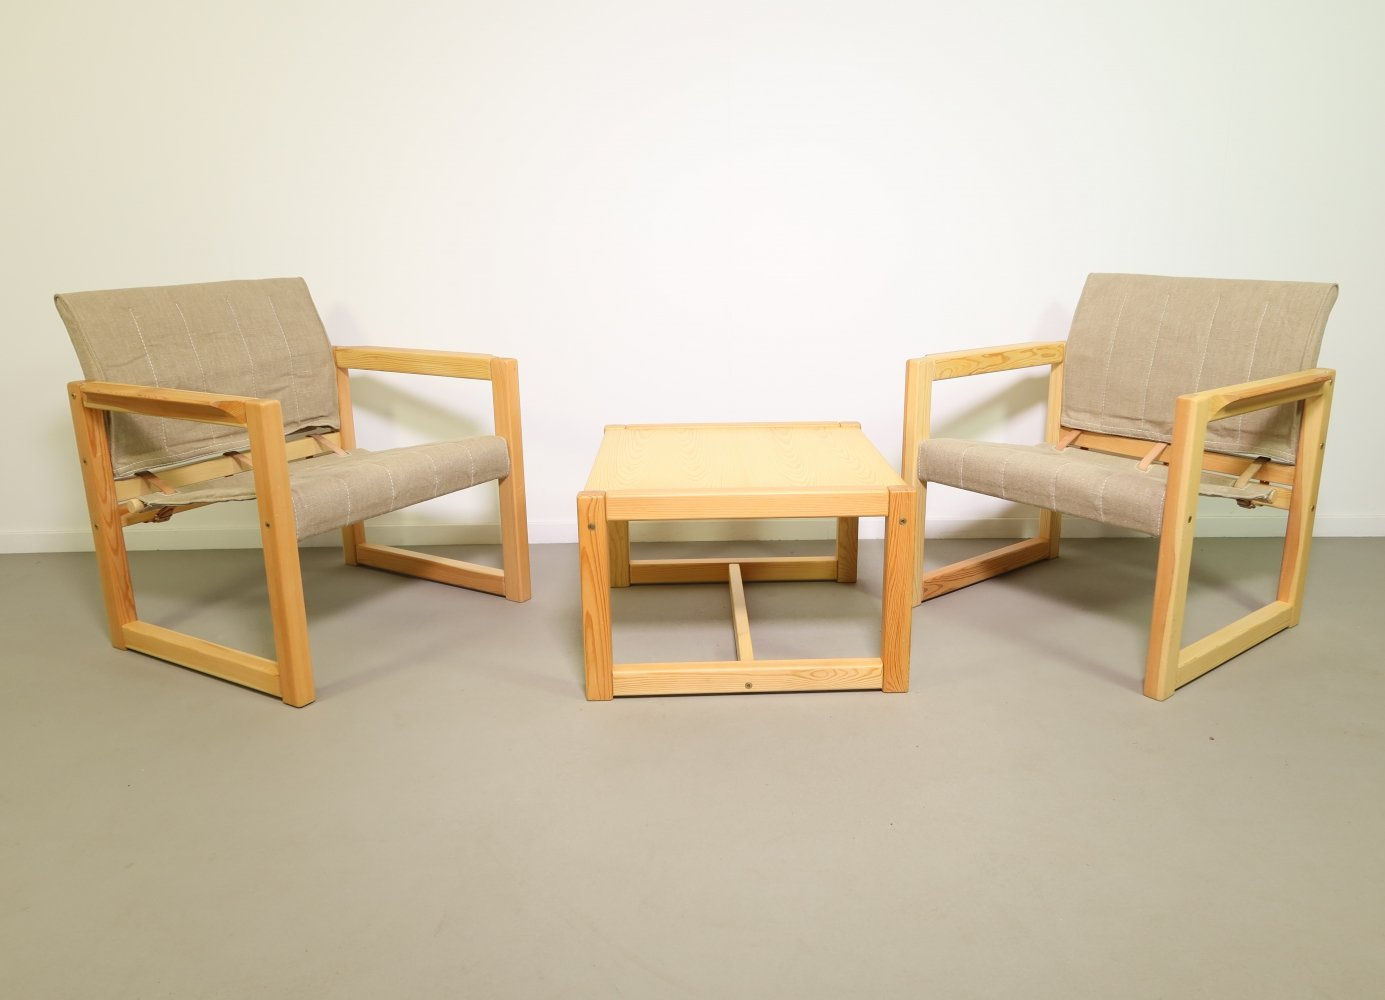 Pinewood safari chairs with matching table by Karin Mobring for IKEA, 1970s